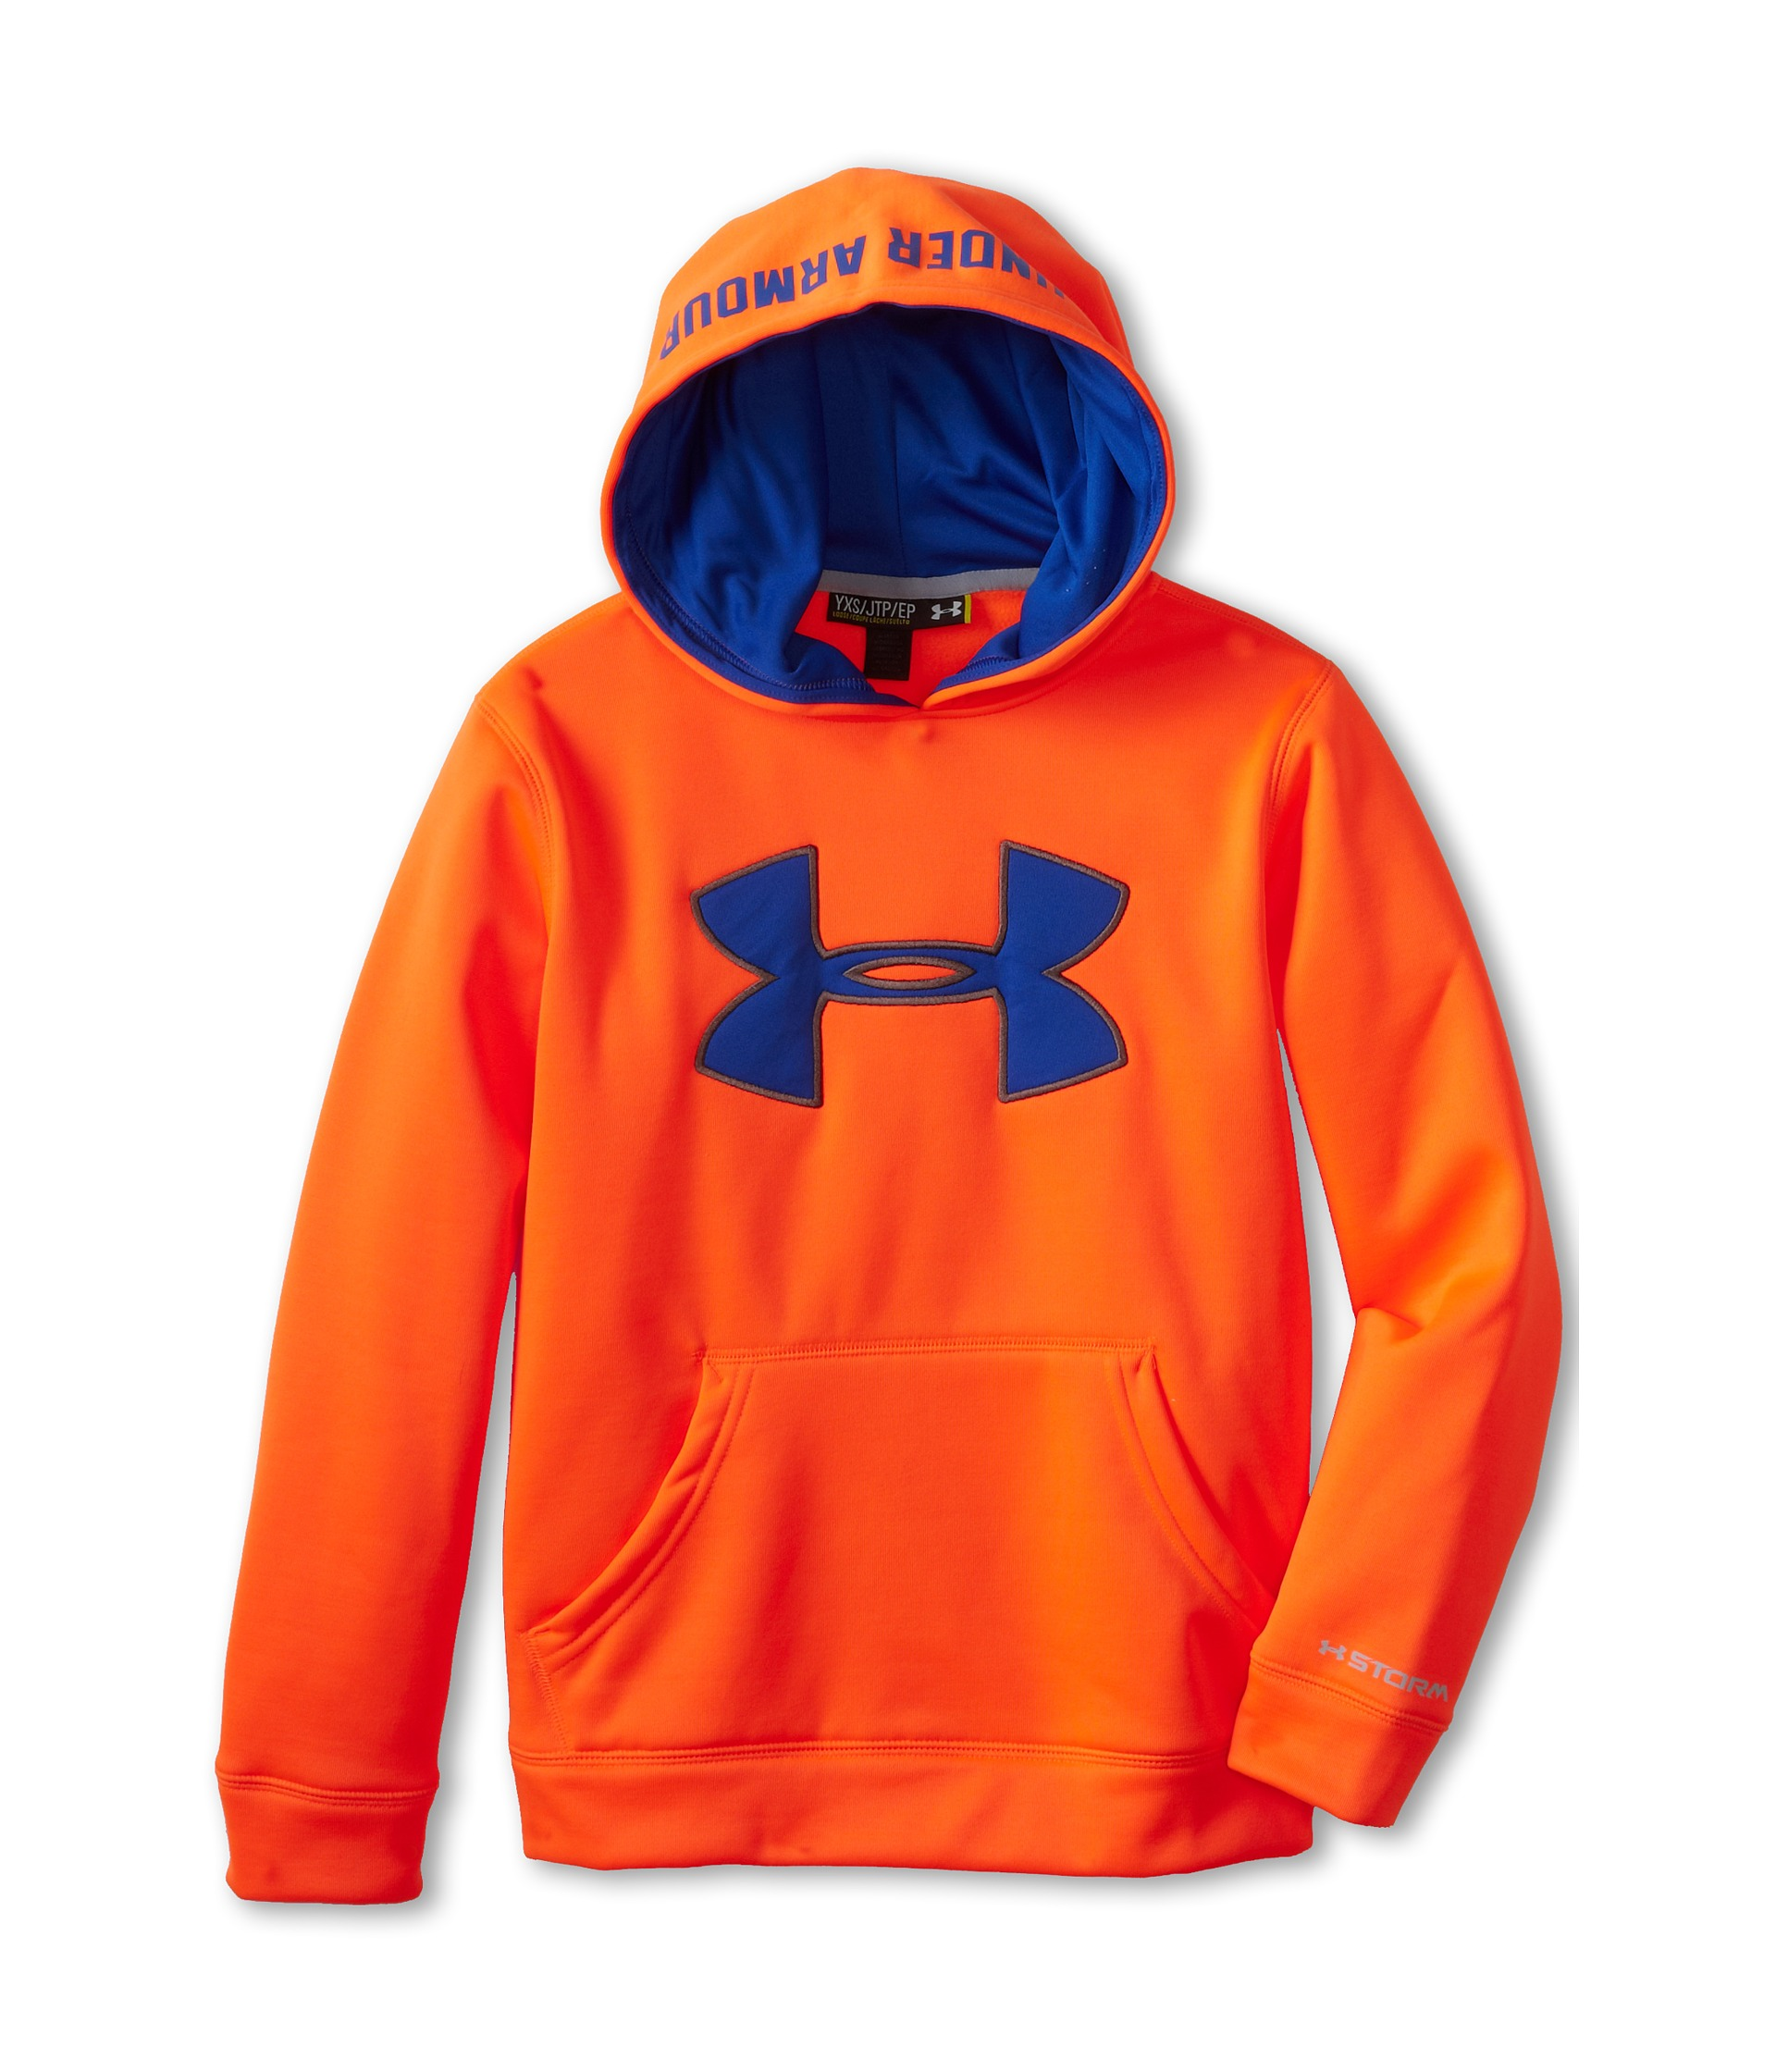 stars 100   4 stars 0   3 stars 0   2 stars 0   1 star 0  Under Armour Sweatshirts Orange